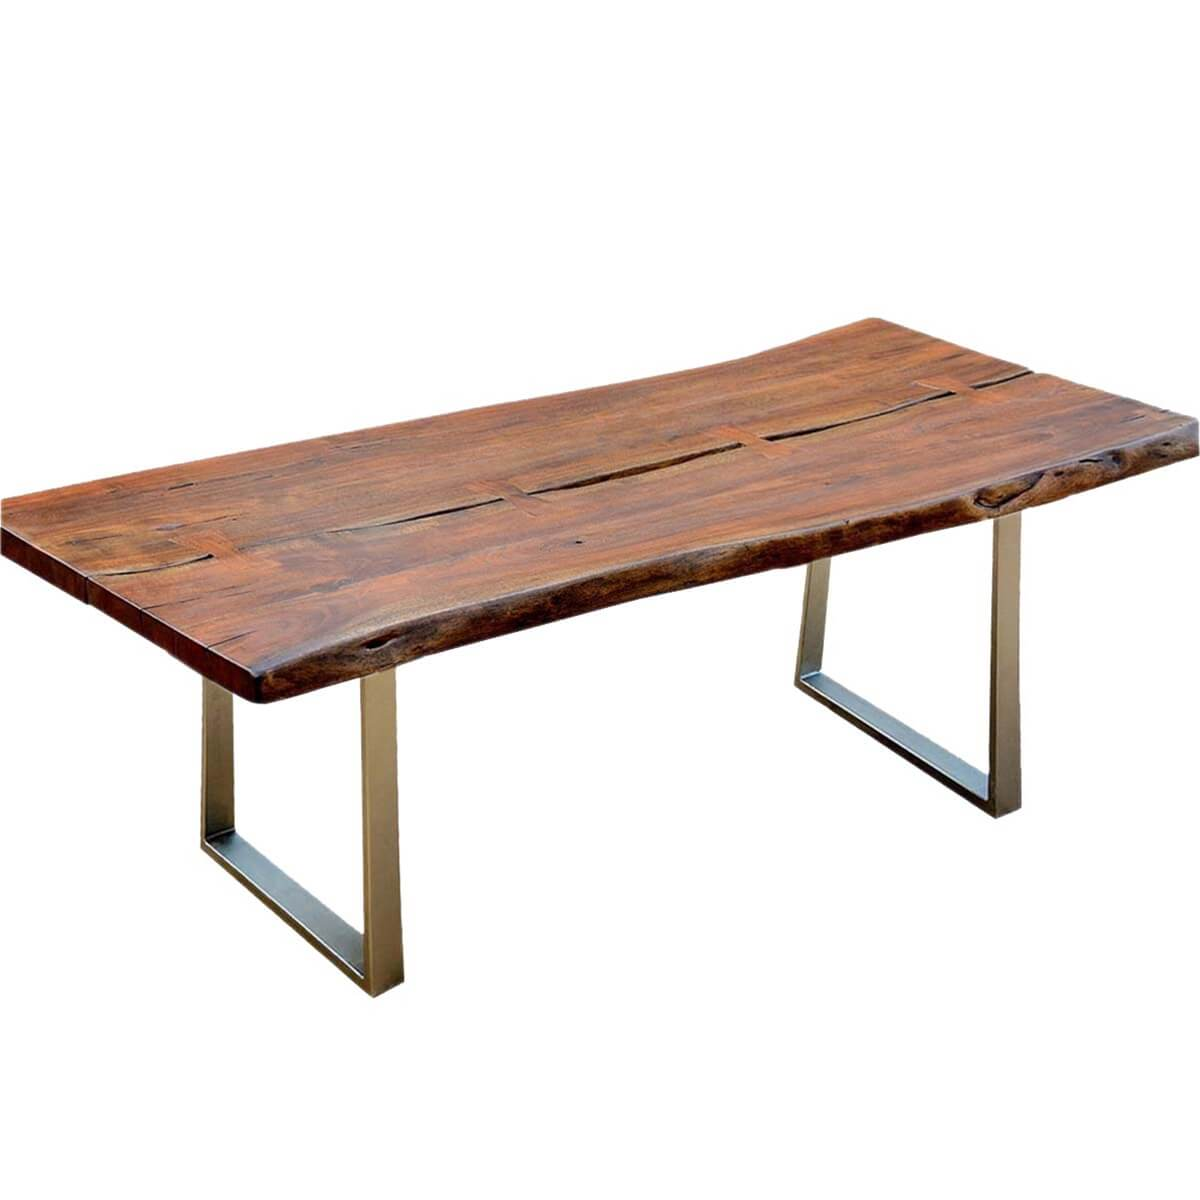 Live edge acacia wood iron rustic large dining table for Biggest dining table